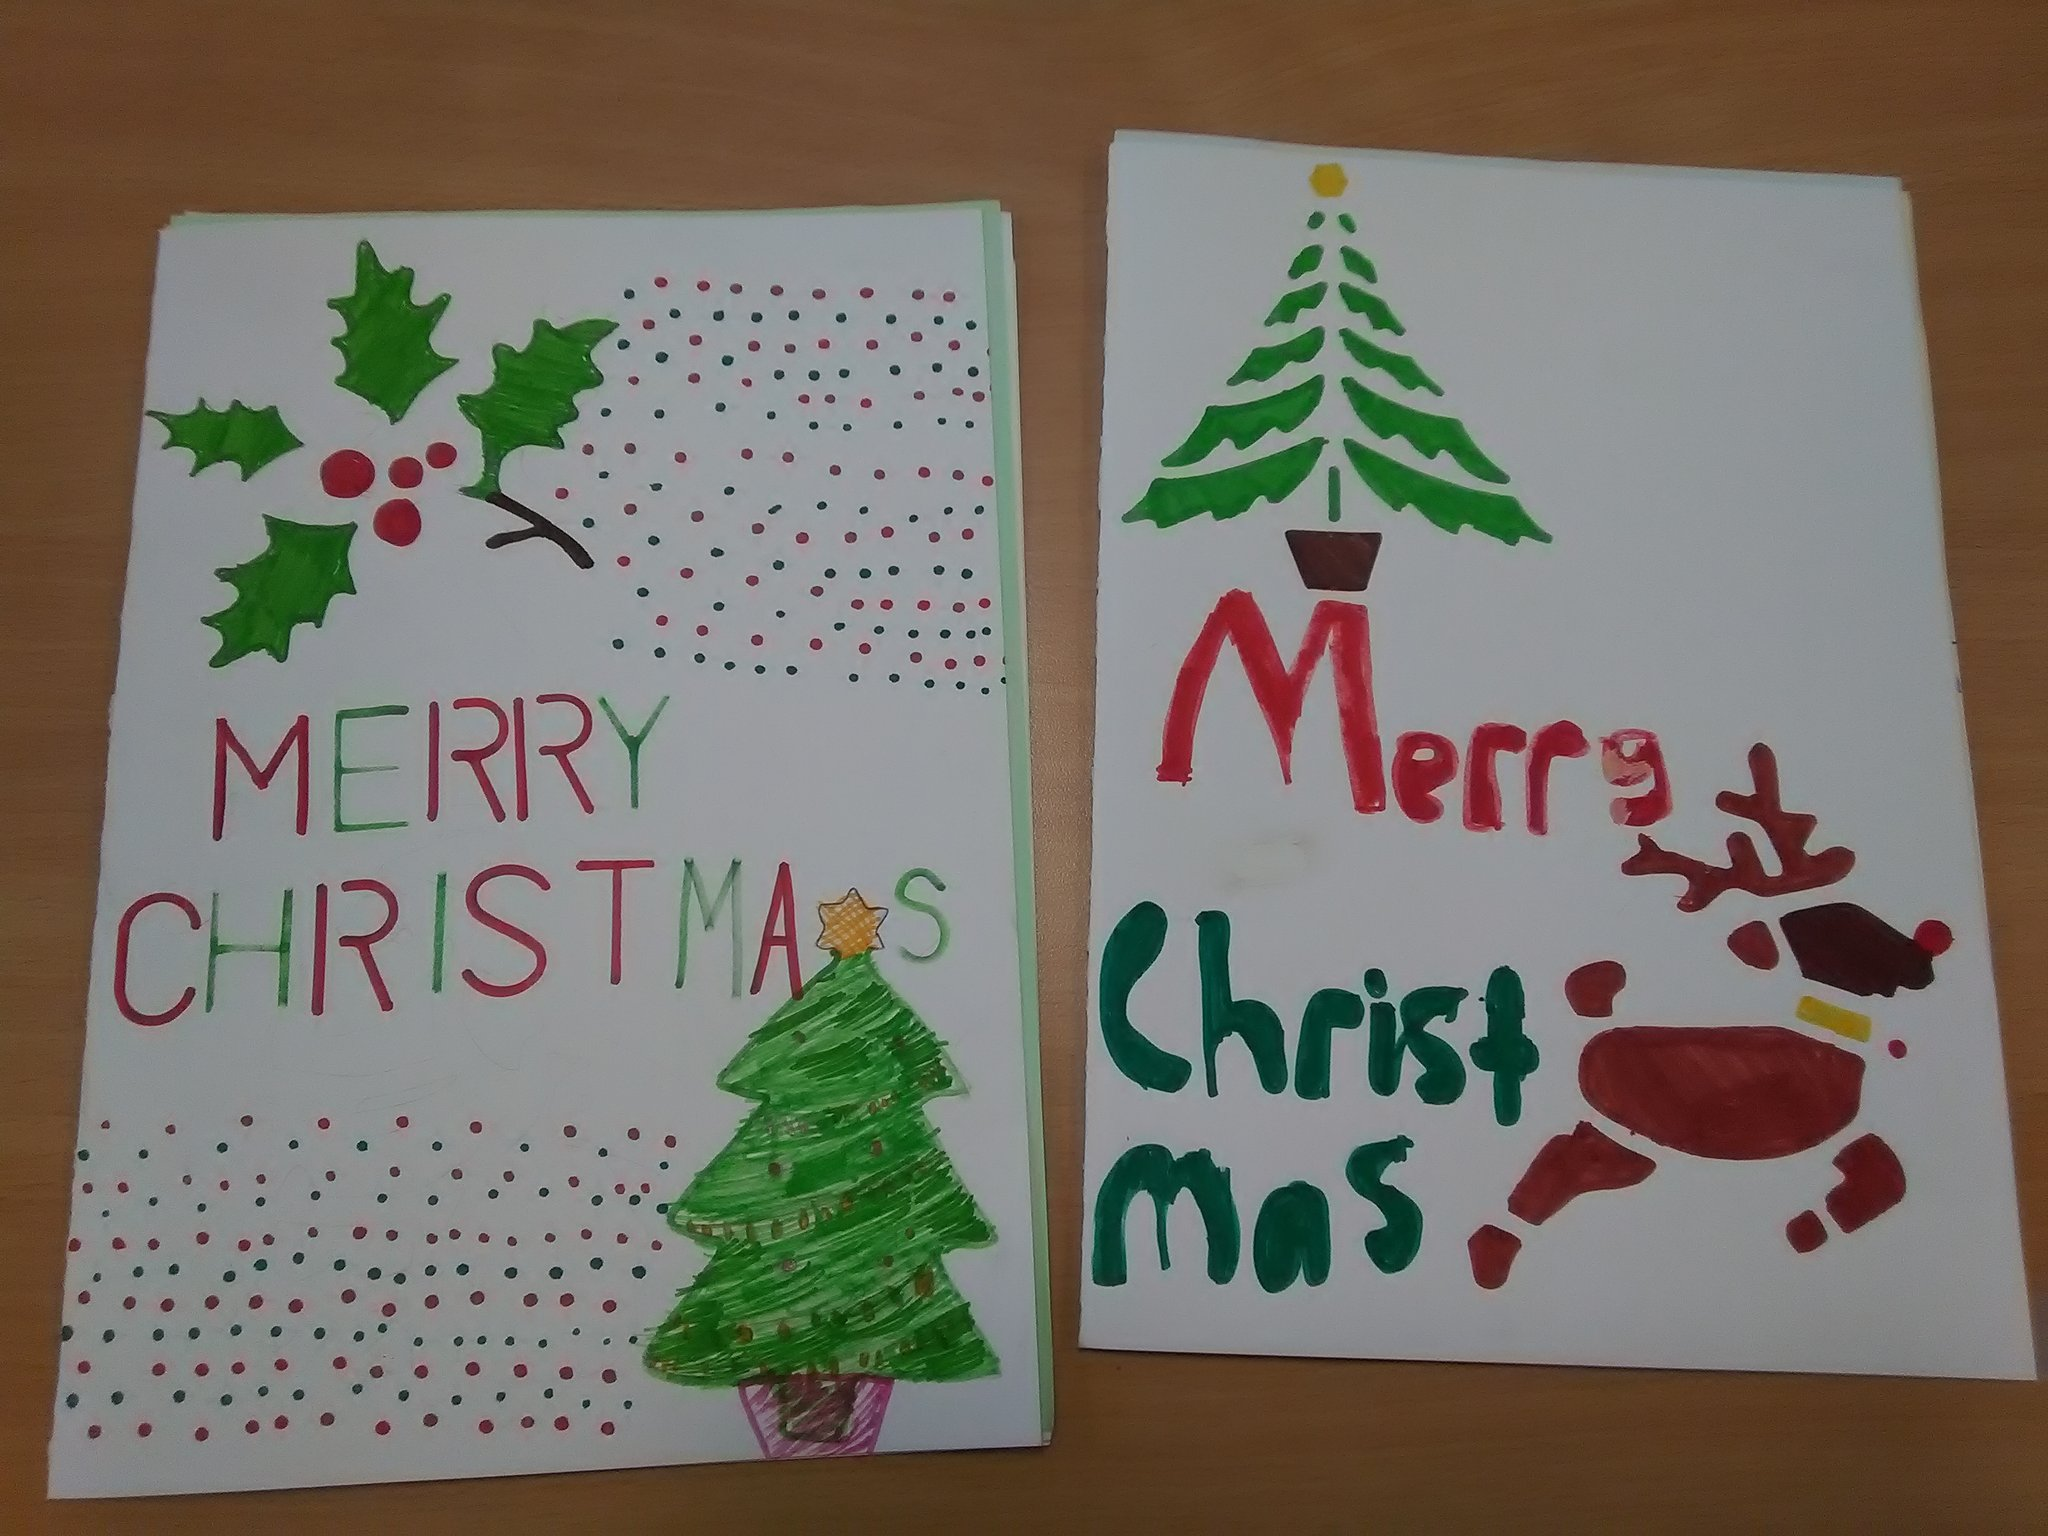 P7 enjoyed reading these Christmas cards from two of last year's P7s who are now in S1 https://t.co/XwCb1vPDOe